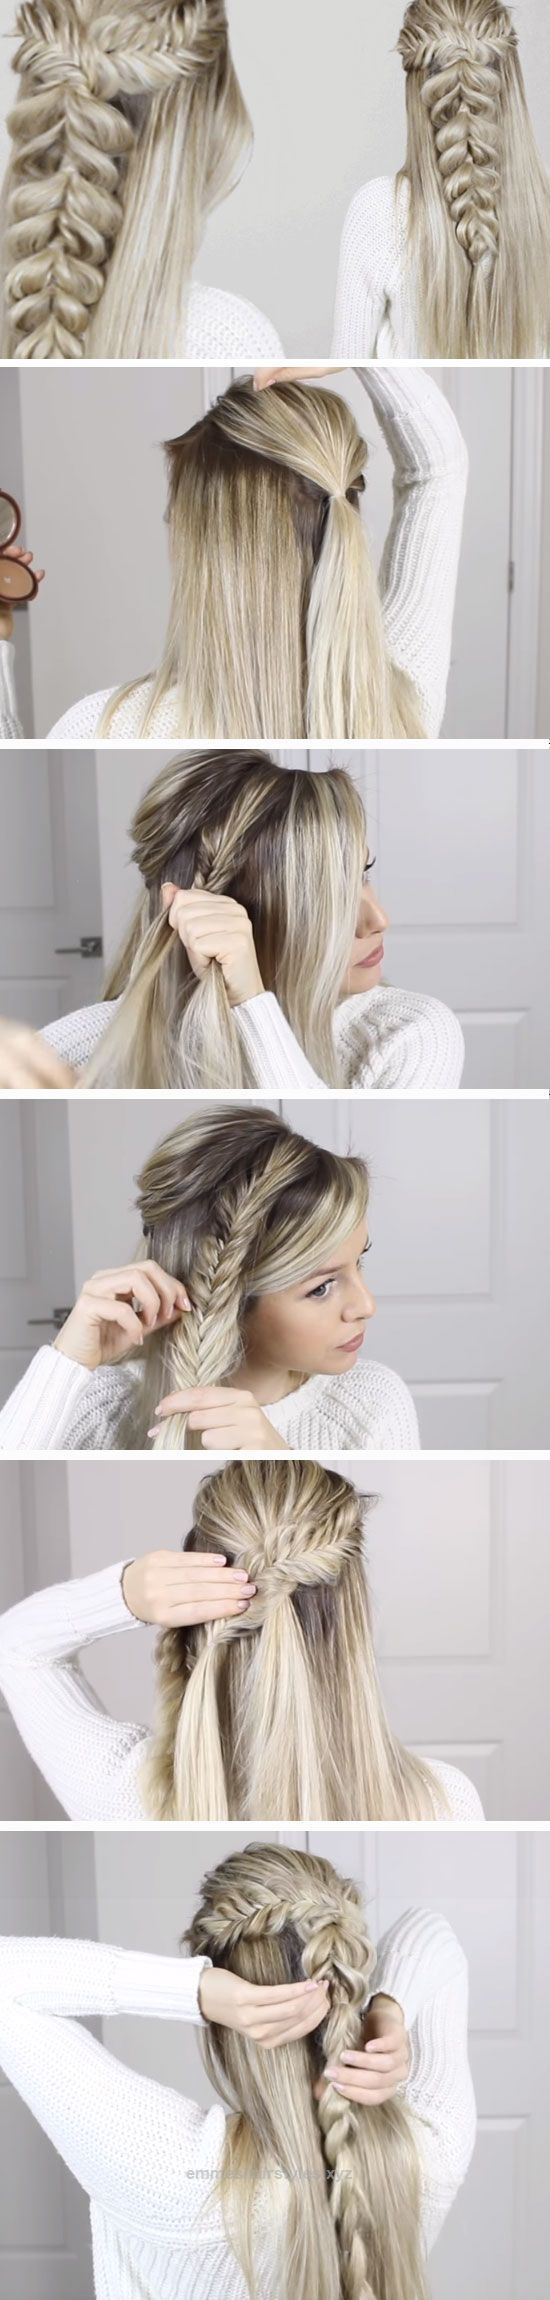 8657 best Diy hairstyles images on Pinterest | Hairstyle ideas, 1 ...